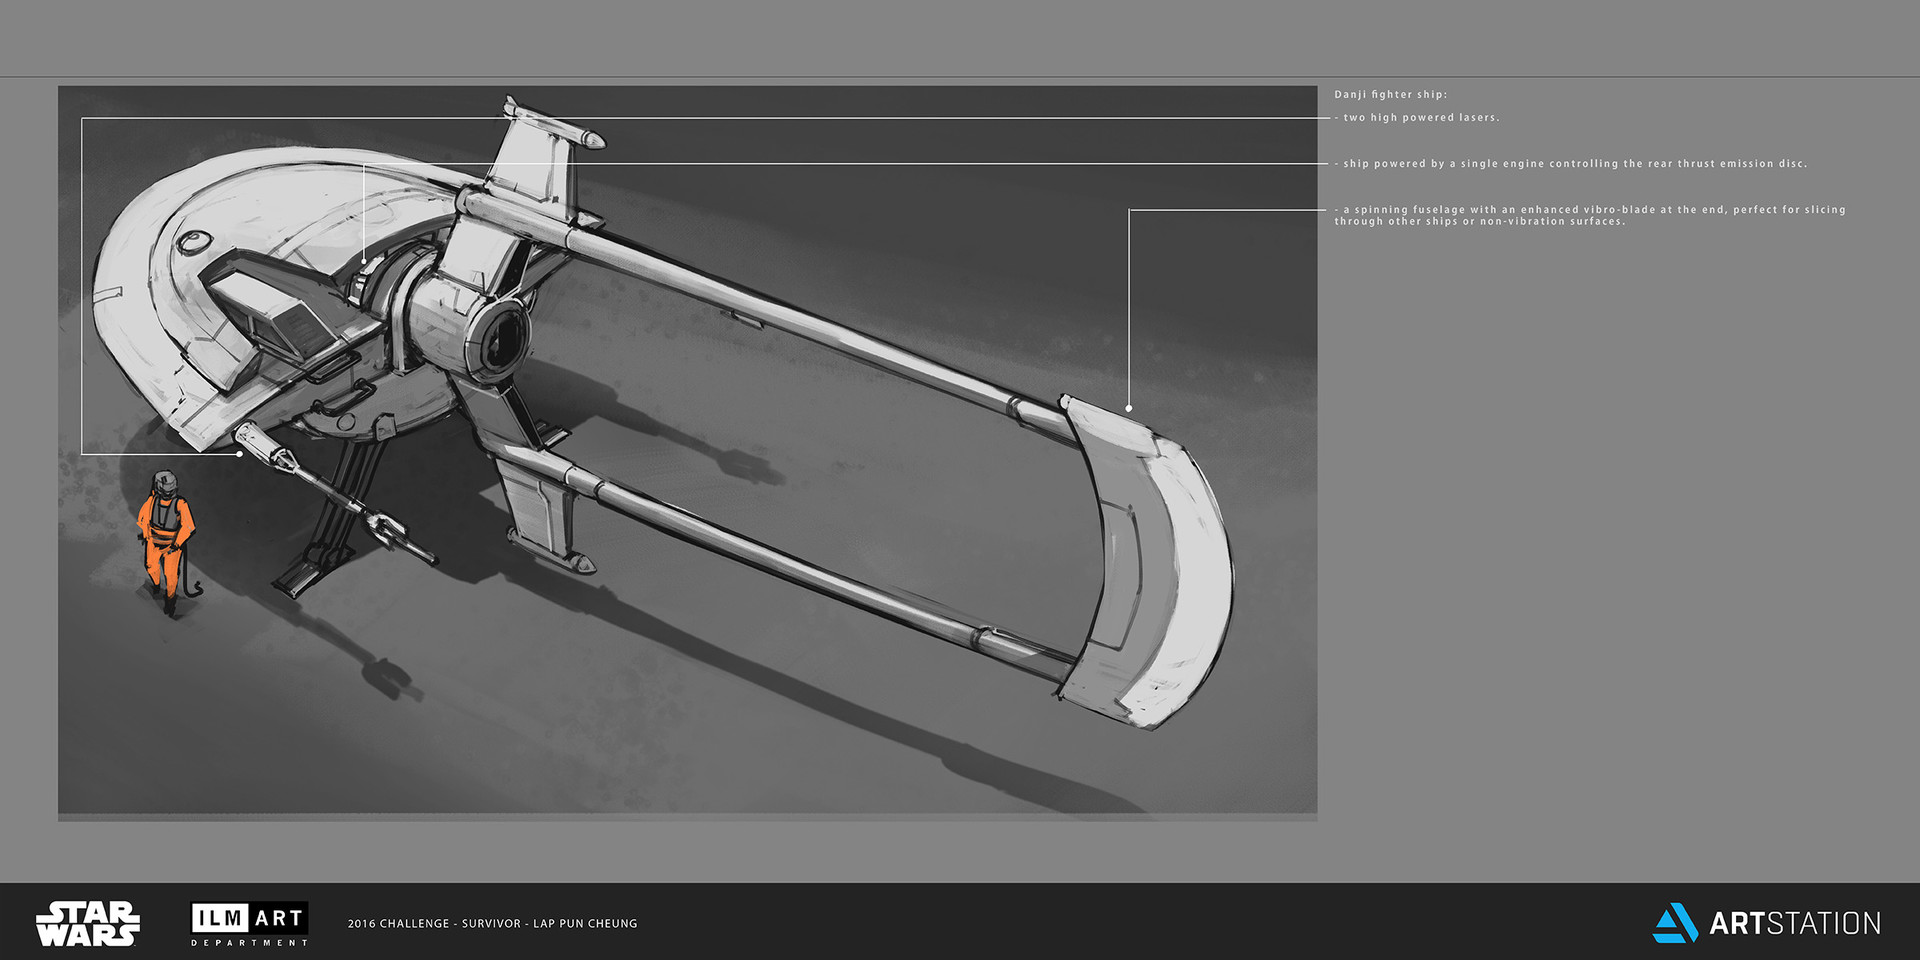 ILM Art Department Challenge - The Job - Part 2 - Vehicle Design